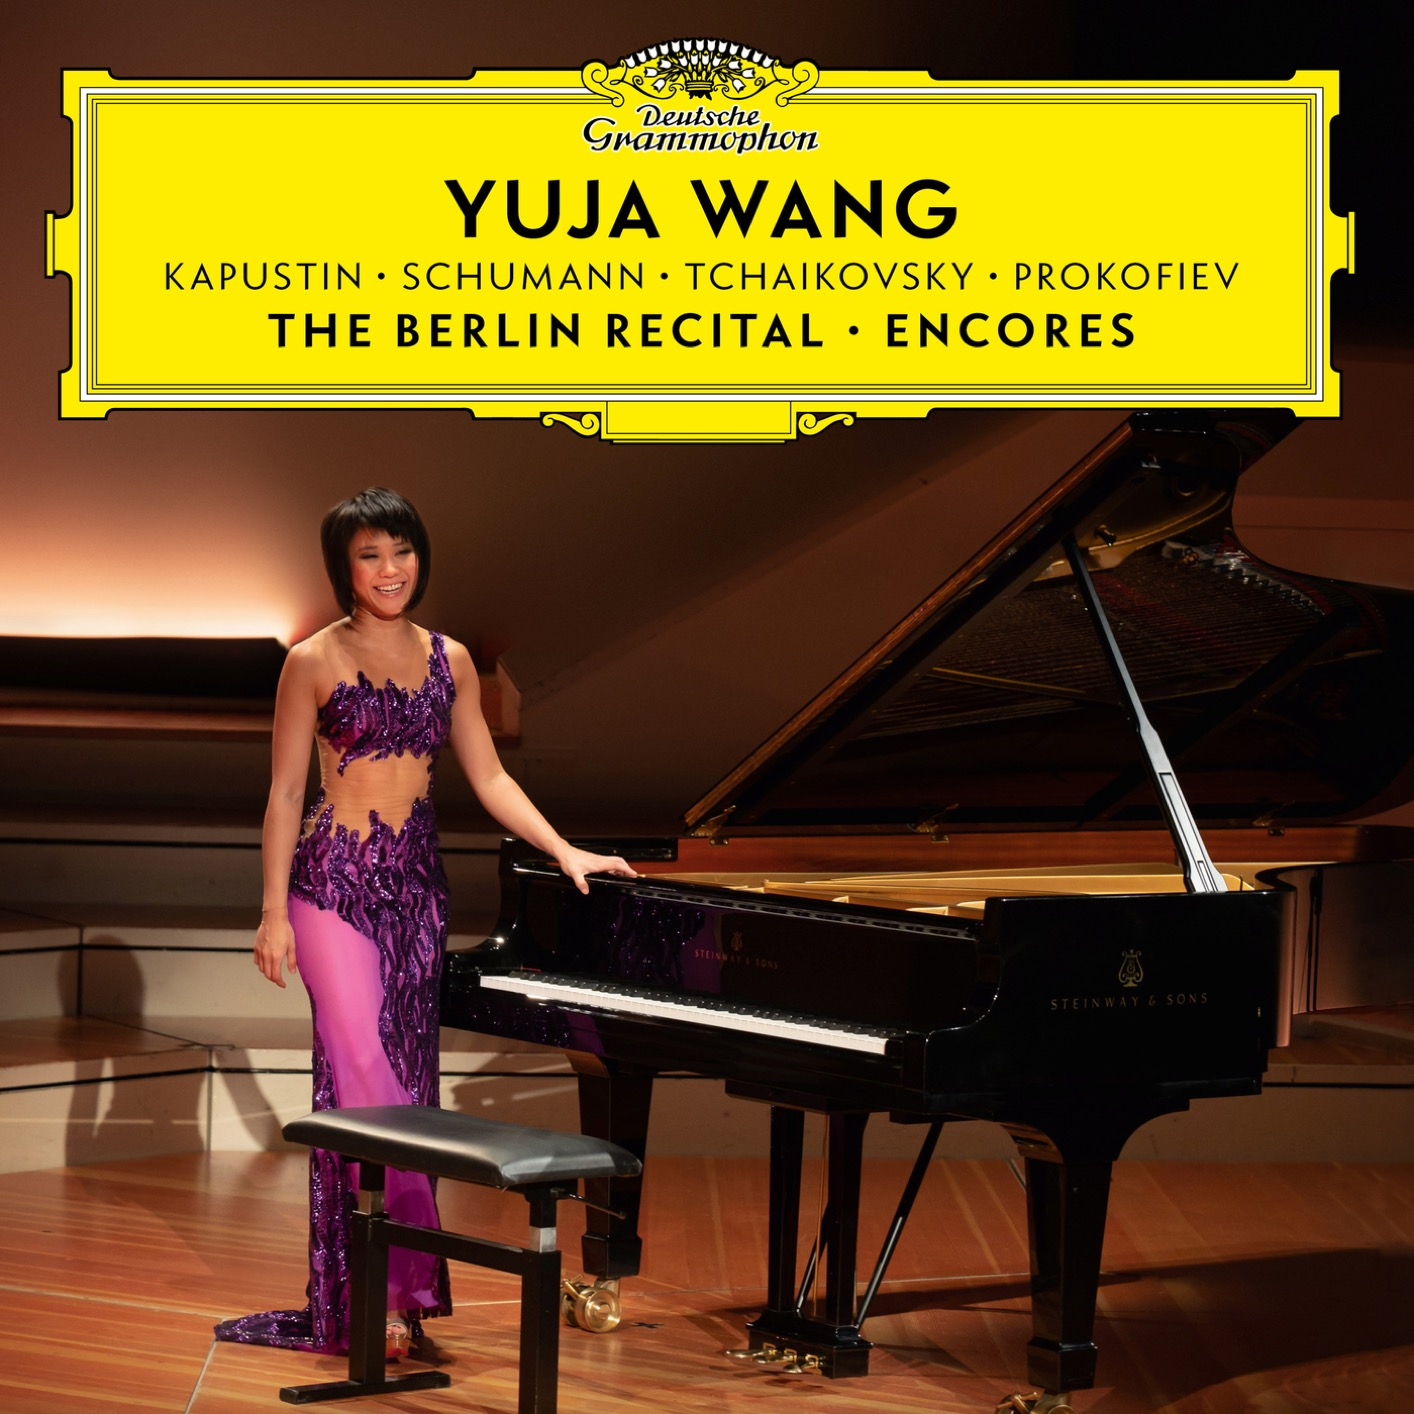 Yuja Wang Is One Of Those Exceedingly Rare Pianists To Have Become A Major International Presence By Her St Birthday Having Performed By Then With Such